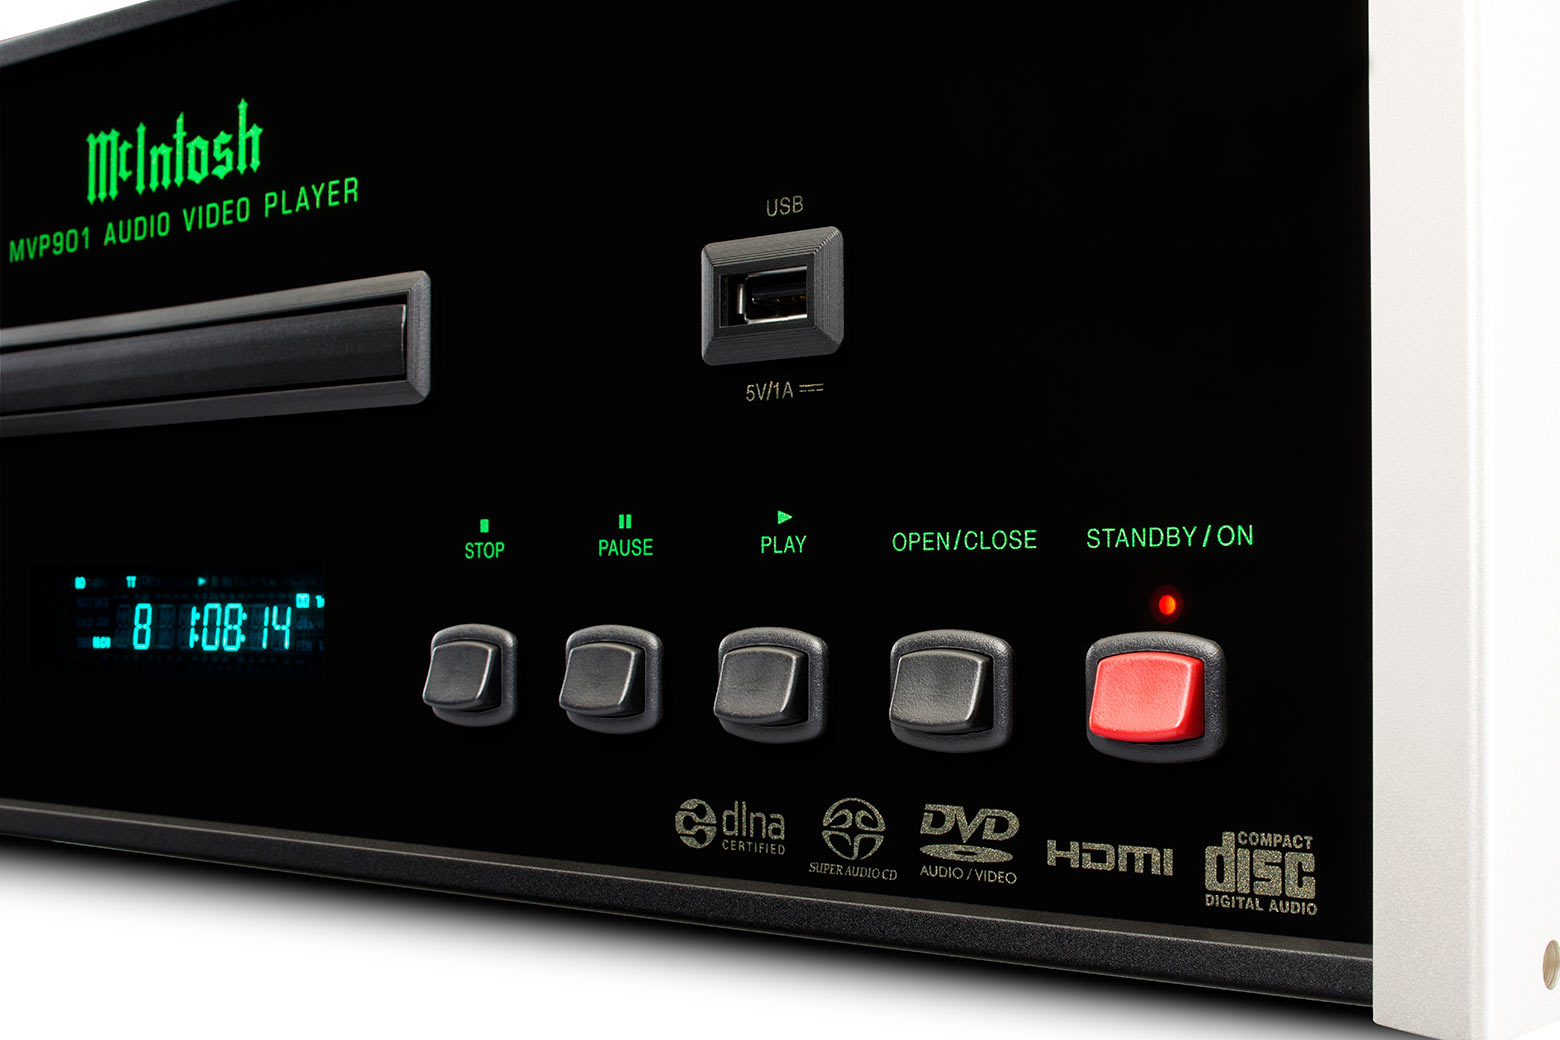 Mcintosh Mvp901 Audio Video Player Hd Base 3d Media On Hdmi Surround Sound Systems Wiring Diagram